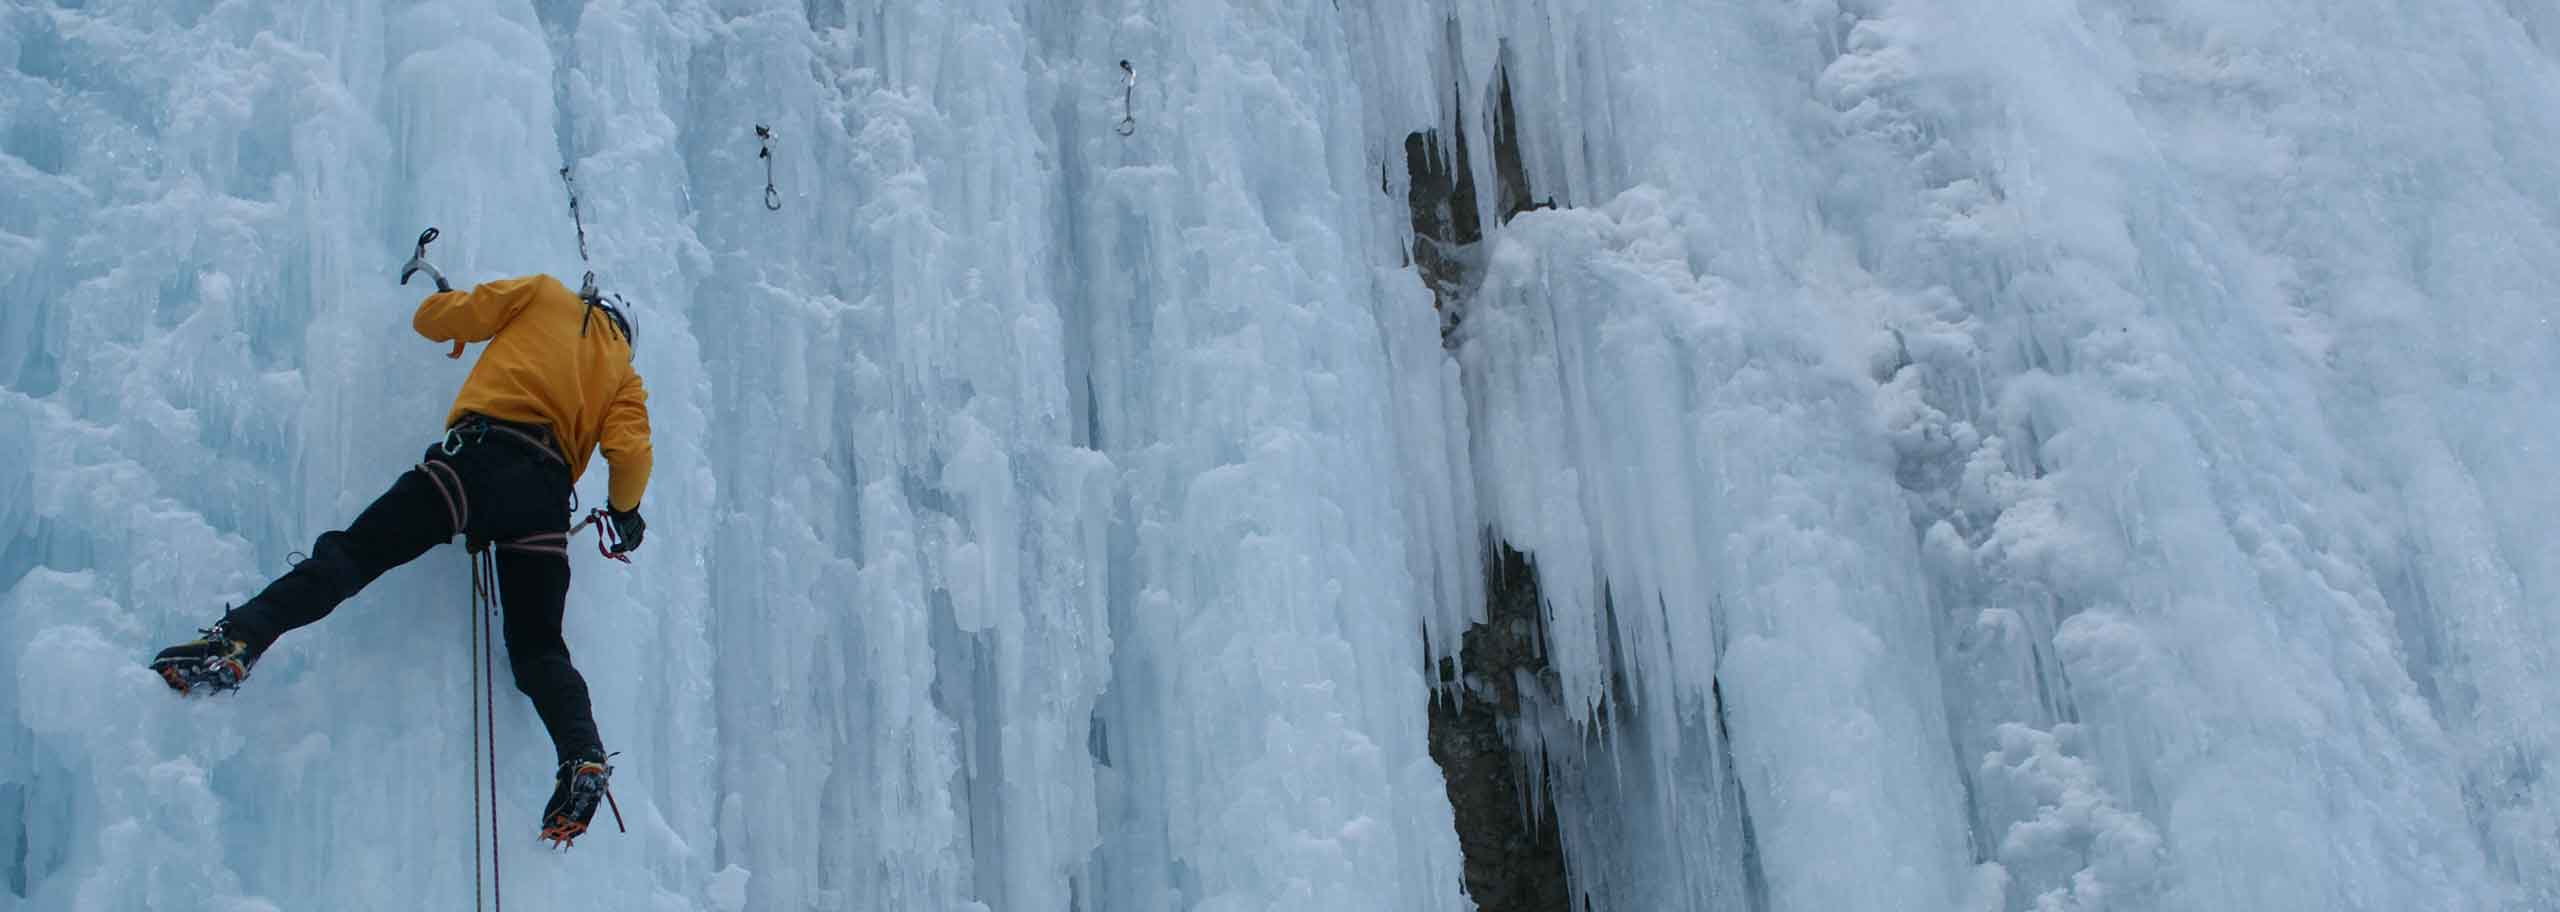 Ice Climbing with a Mountain Guide in San Martino di Castrozza